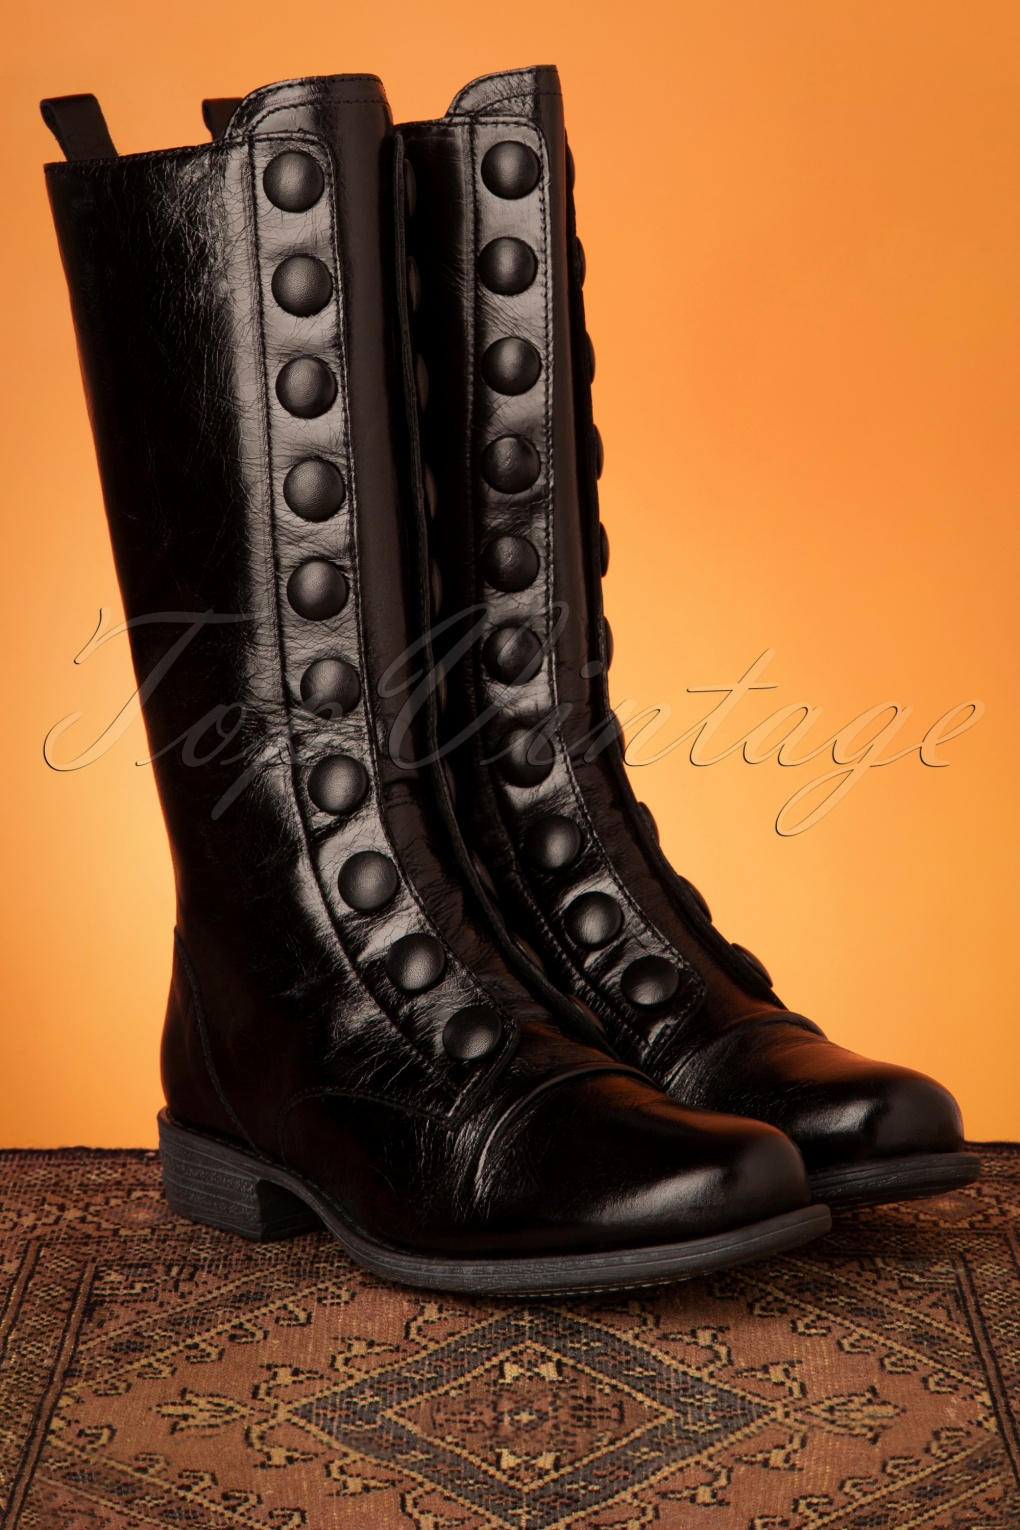 Vintage Boots- Buy Winter Retro Boots 60s Lincoln Leather Boots in Black £209.64 AT vintagedancer.com